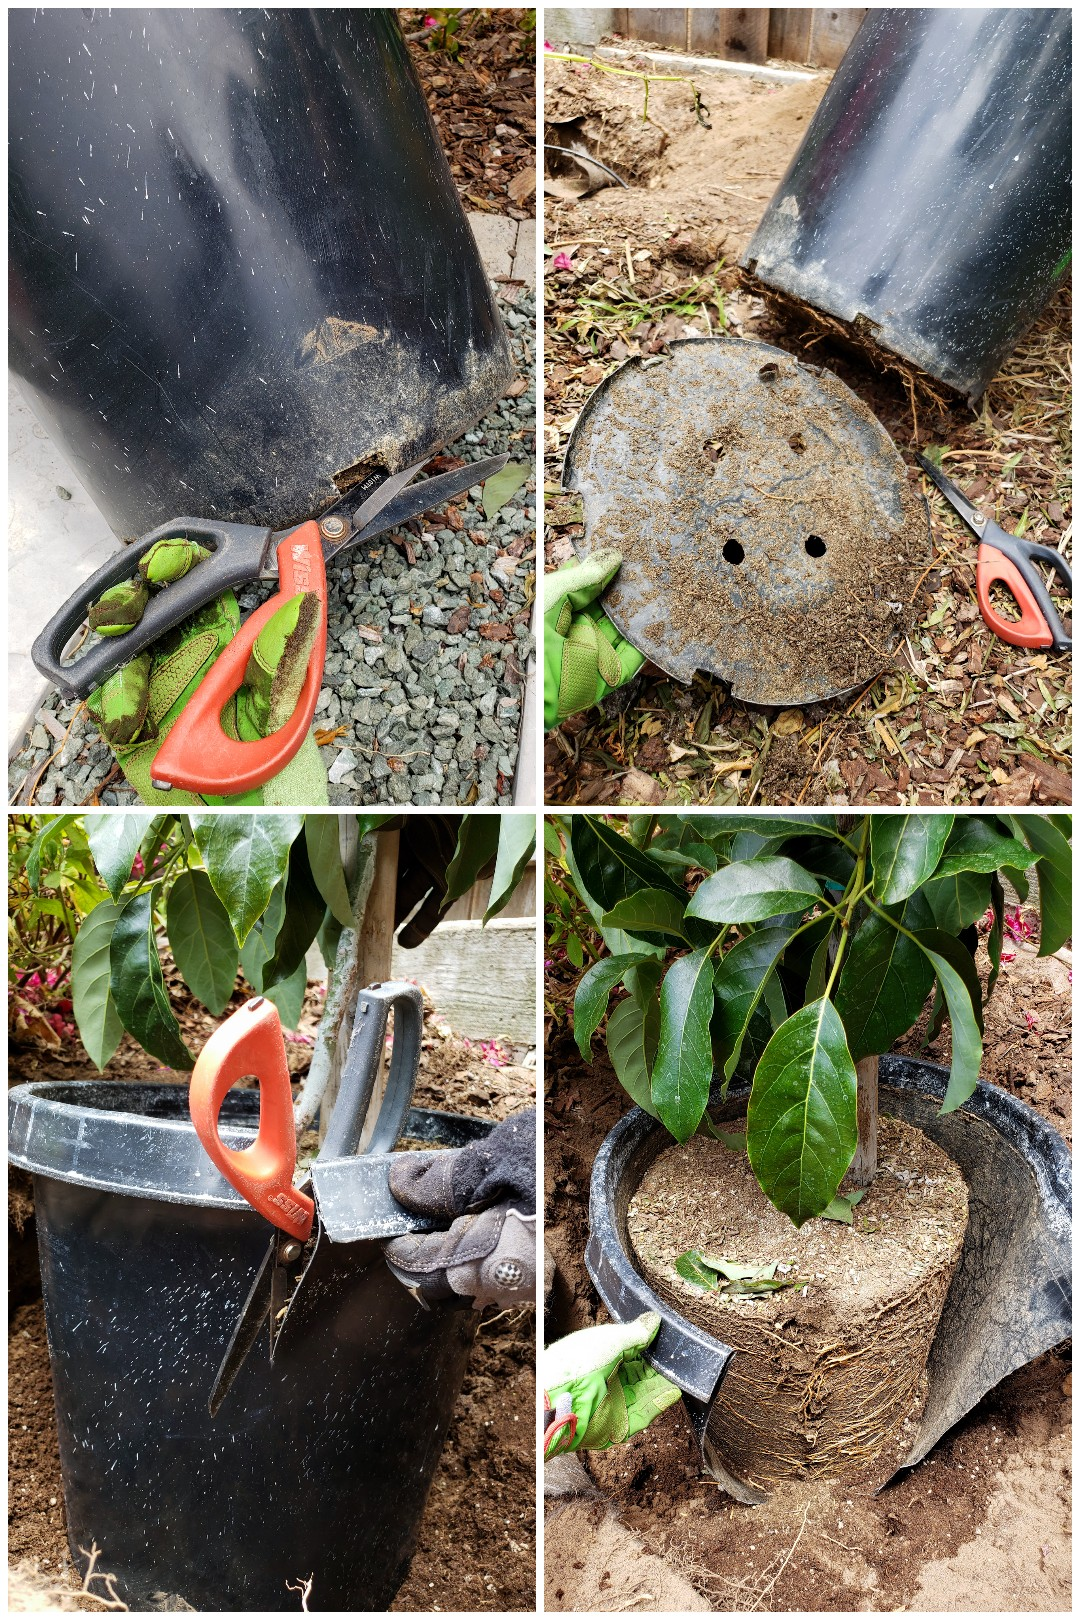 A four way image collage of how to easily remove a nursery pot from a large, root bound tree. The first image shows a pair of scissors starting to cut along the bottom side of the nursery pot. The second image shows the bottom of the nursery pot cut out, the circular plastic piece is covered in dirt and a few roots. The third image shows the scissors now cutting down the side of the pot starting from the top and working towards the bottom. The fourth image shows the pot and tree sitting in its planting hole with the side cut all the way through and somewhat falling away from the exposed root ball. From here it is easy to peel it away and pull if from the root ball.